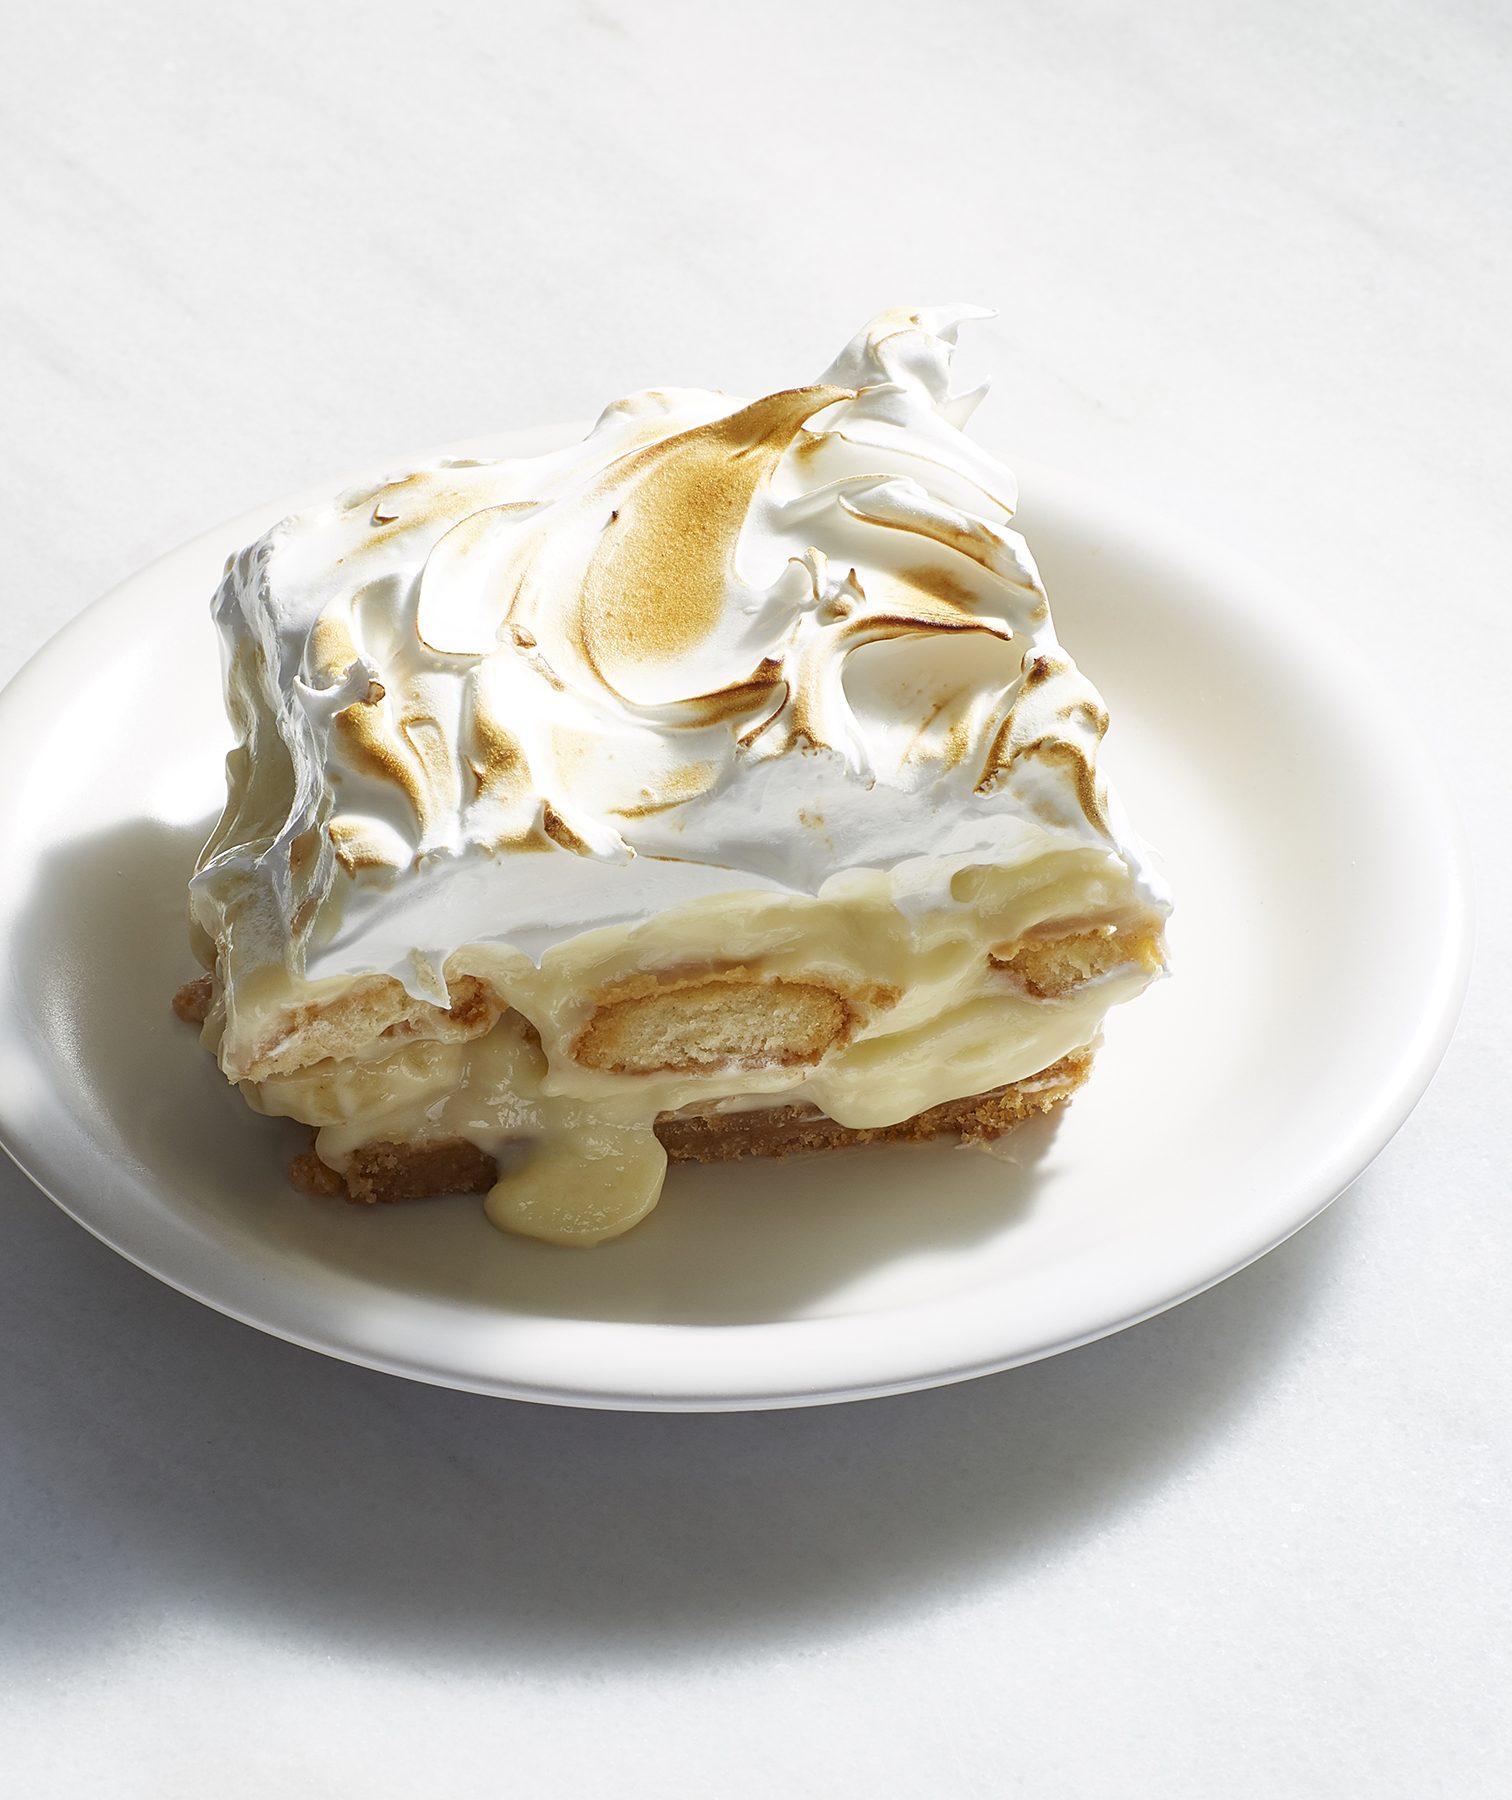 Banana Pudding Pie Bars With Meringue Topping (Pie Bars)